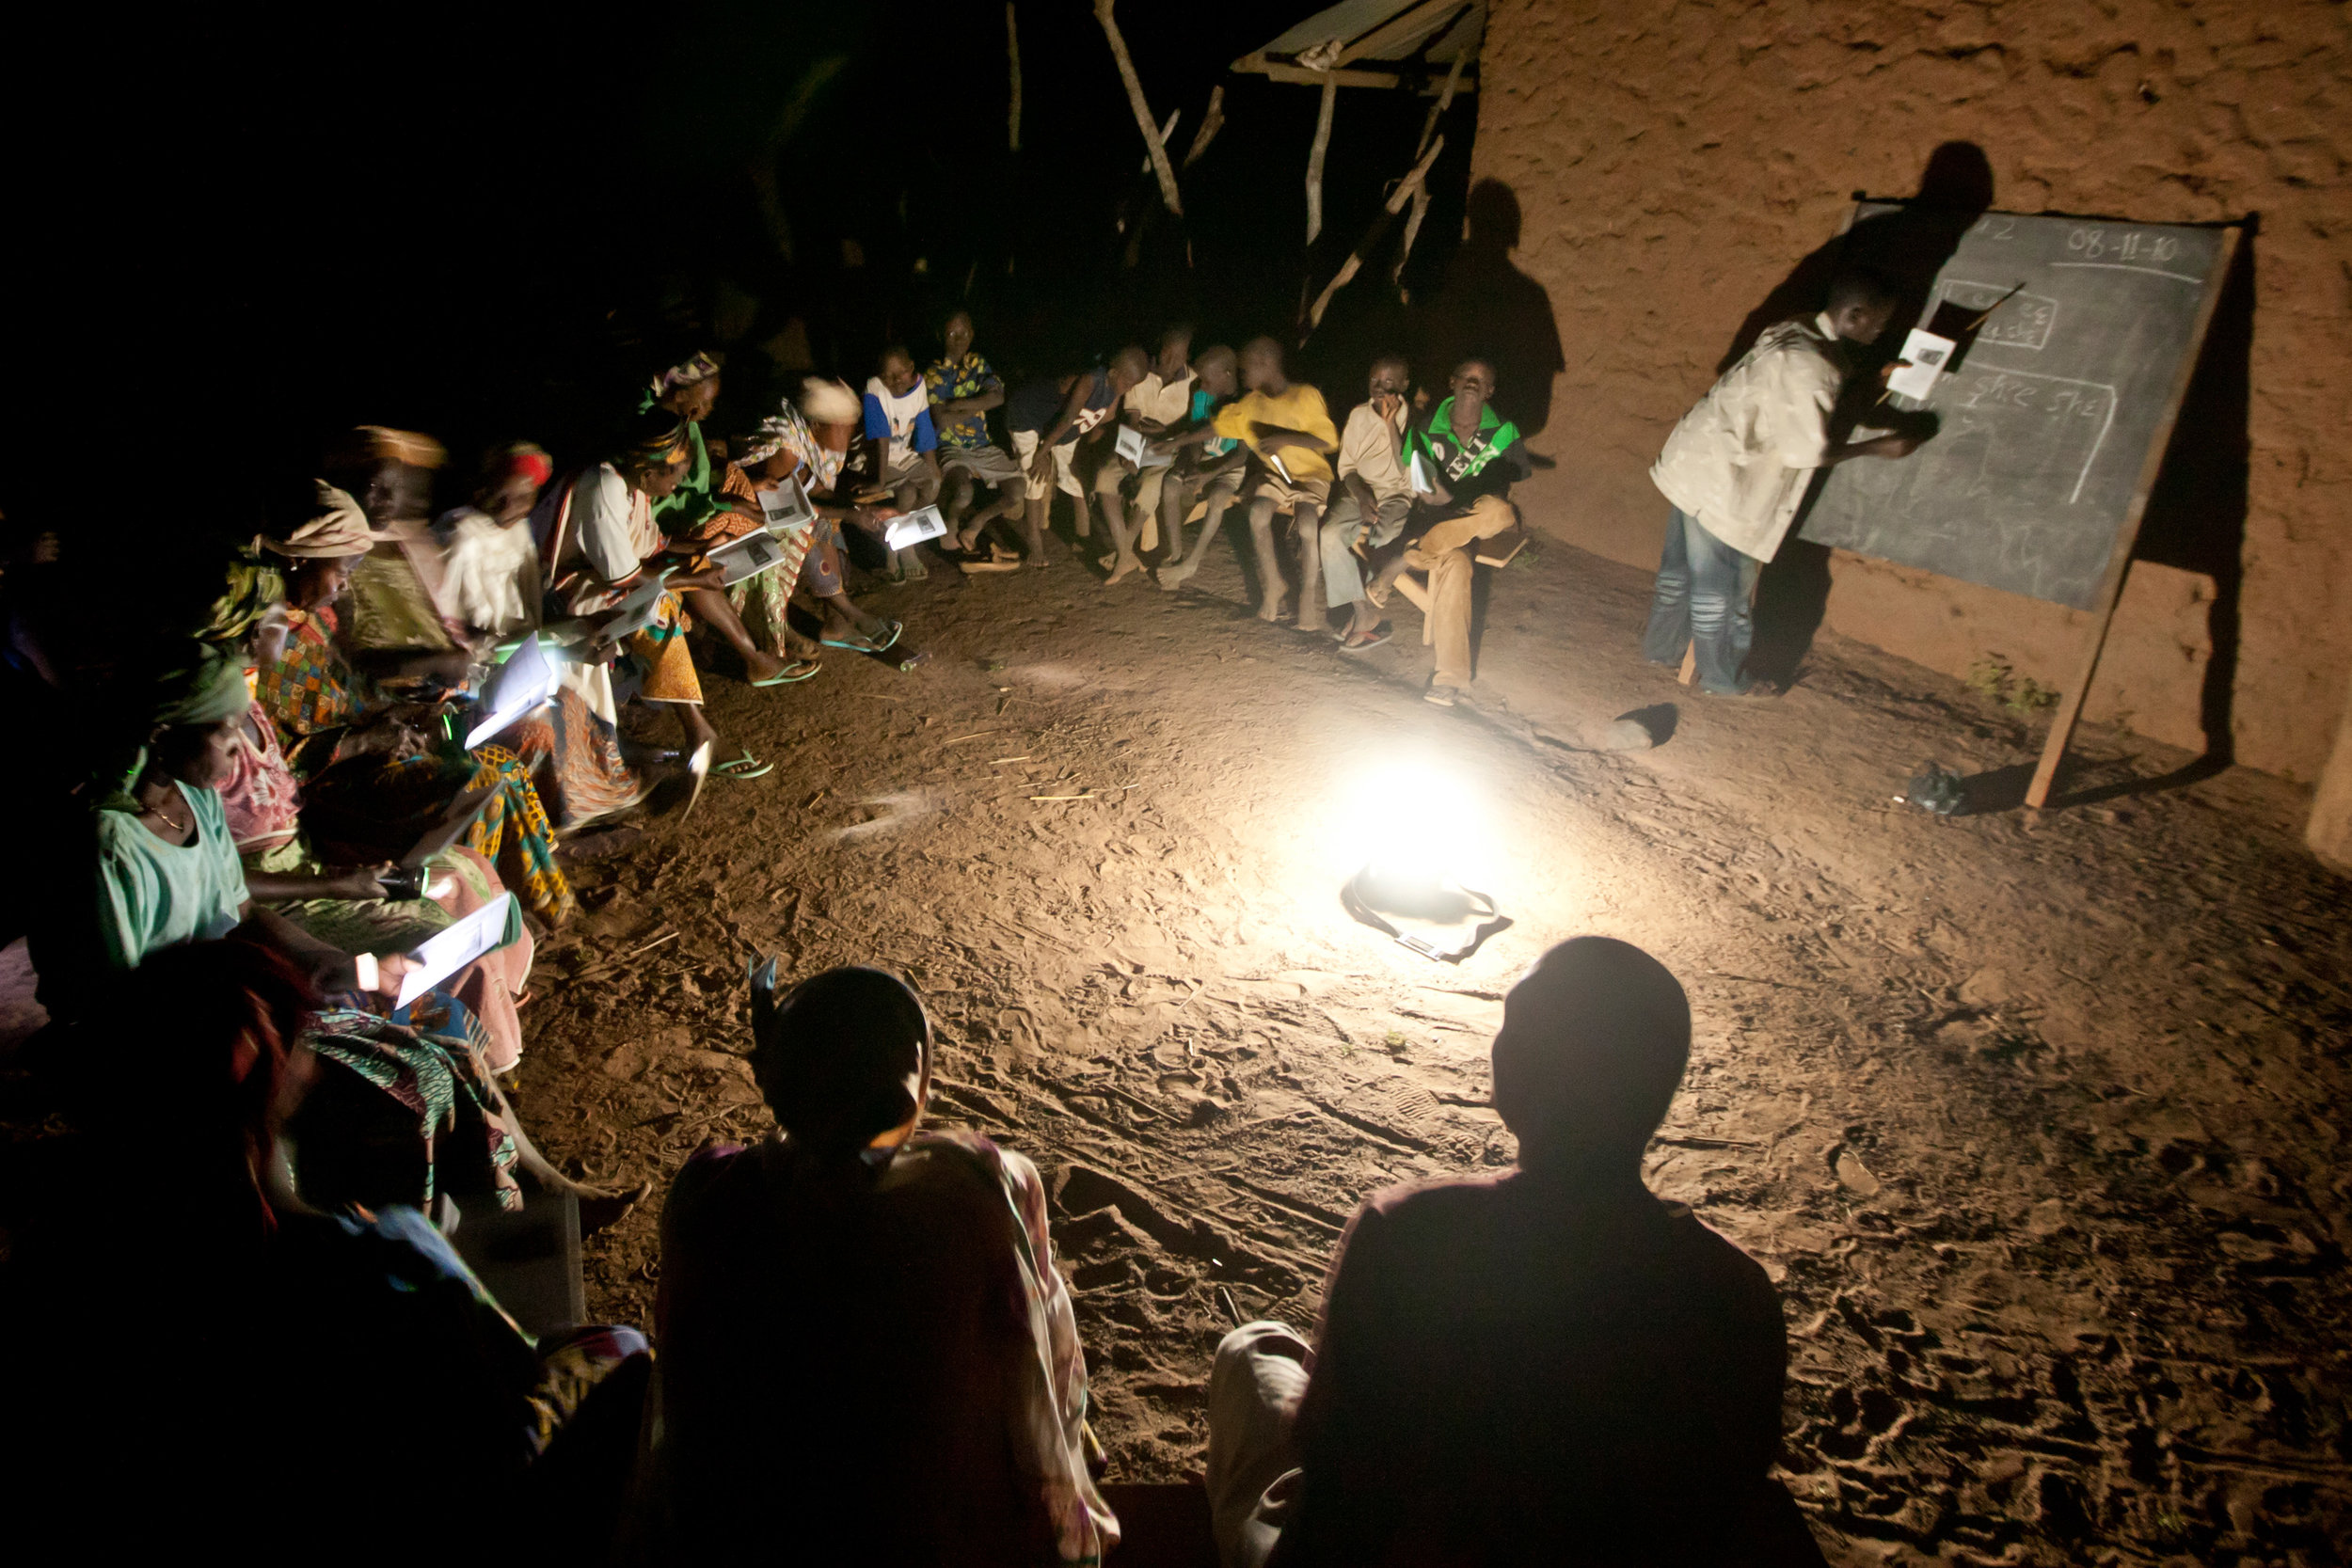 Adults, mostly women, are highly motivated to attend nighttime literacy classes after their day's work is done. But this poses challenges since many communities do not have electricity. With solar powered lights, LDP has been able to solve some of these problems.